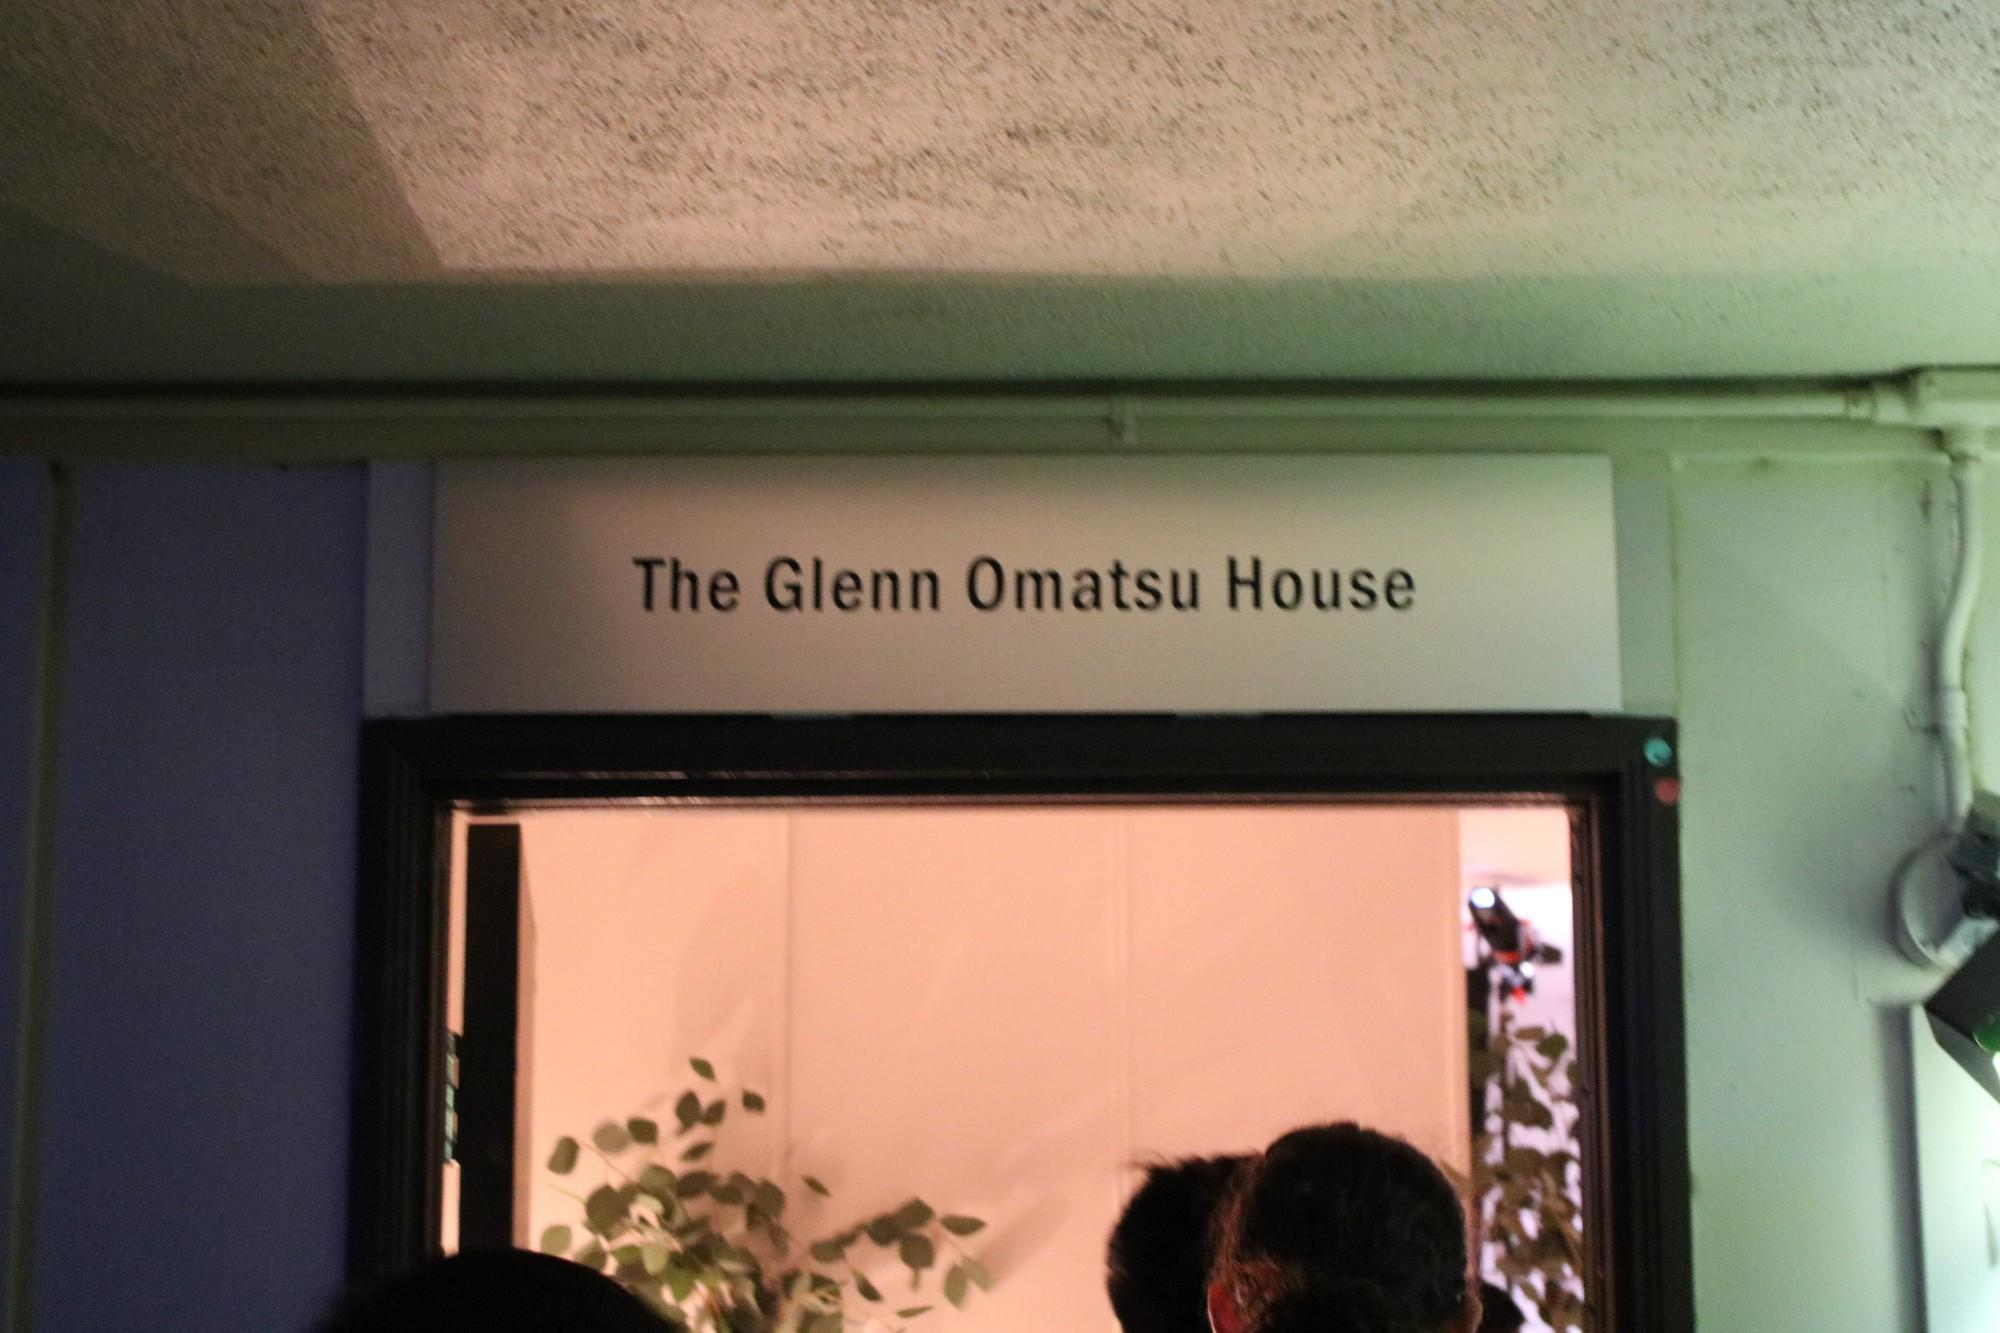 Formerly known as the Asian American Studies Activities Center, the Omatsu House has been a keystone to the CSUN Ethnic Studies community. Photo credit: Tandy Lau